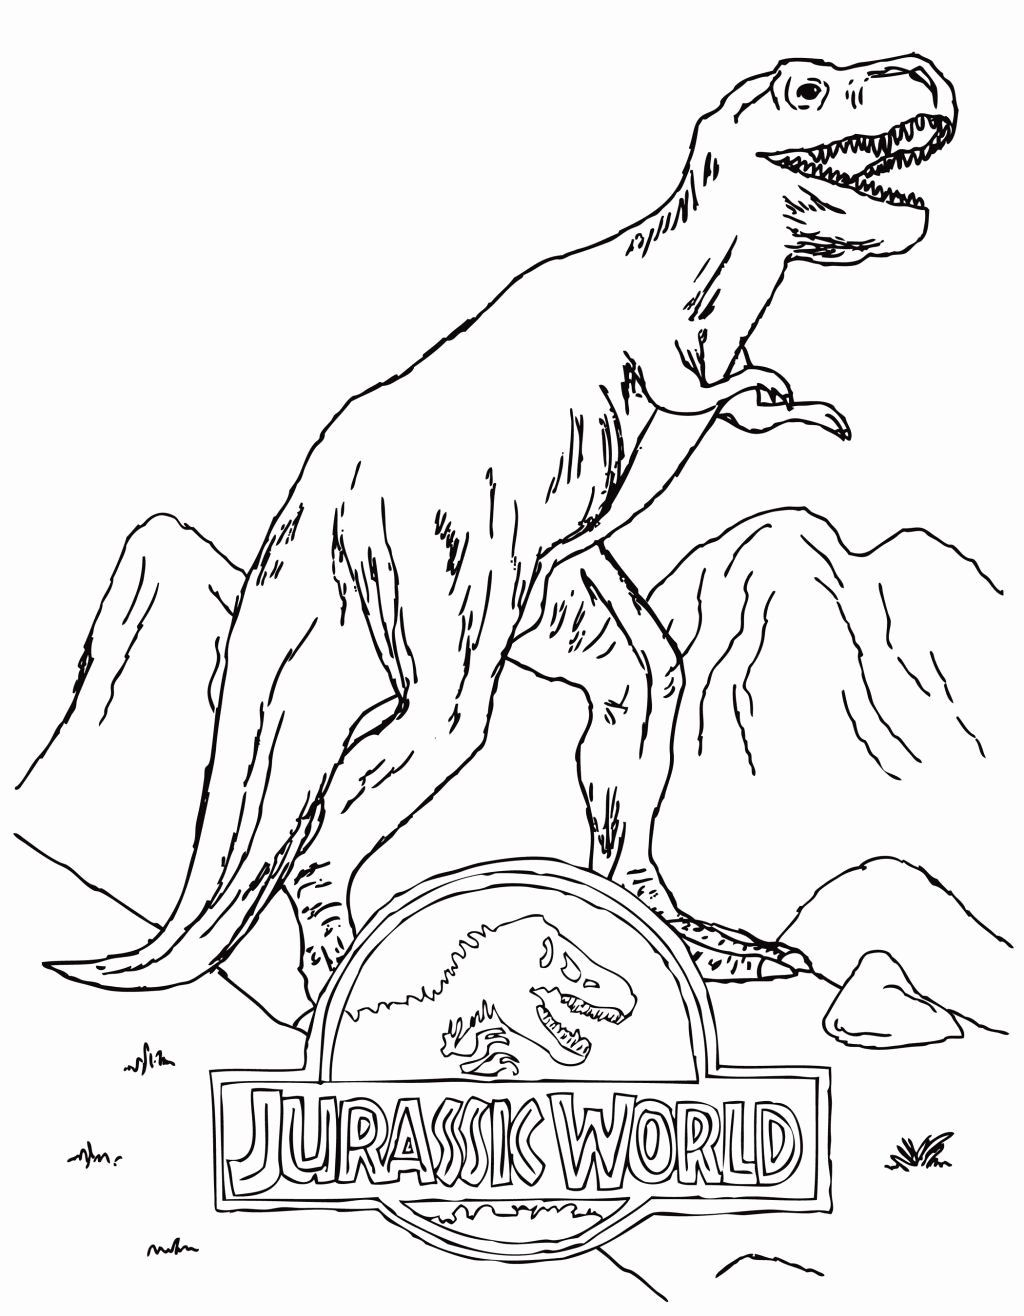 Jurassic Park Coloring Page Lovely Jurassic World Coloring Sheets Dinosaur Coloring Pages Coloring Pages Inspirational Coloring Pages